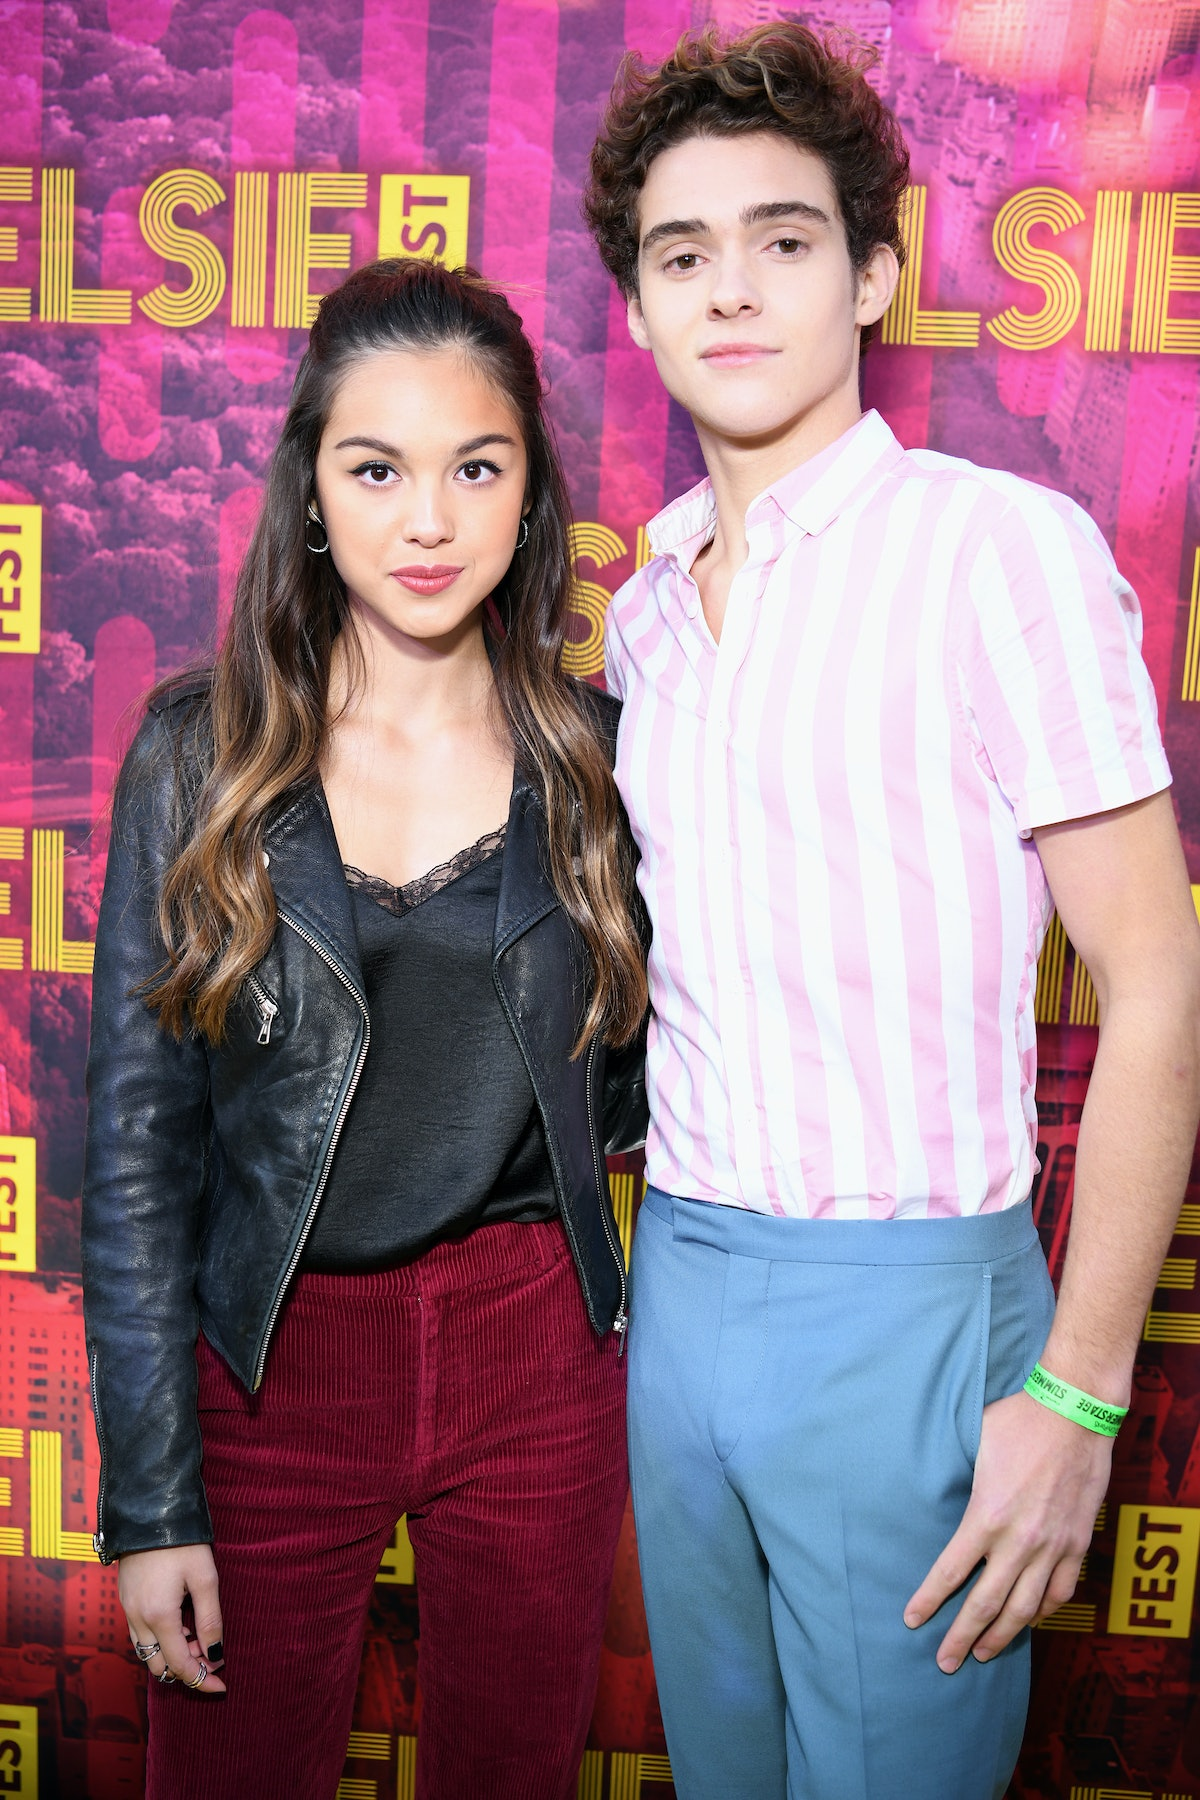 NEW YORK, NEW YORK - OCTOBER 05: Joshua Bassett and Olivia Rodrigo attend the 5th Annual Elsie Fest: Broadway's Outdoor Music Festival on October 05, 2019 in New York City. (Photo by Jenny Anderson/Getty Images for Elsie Fest )